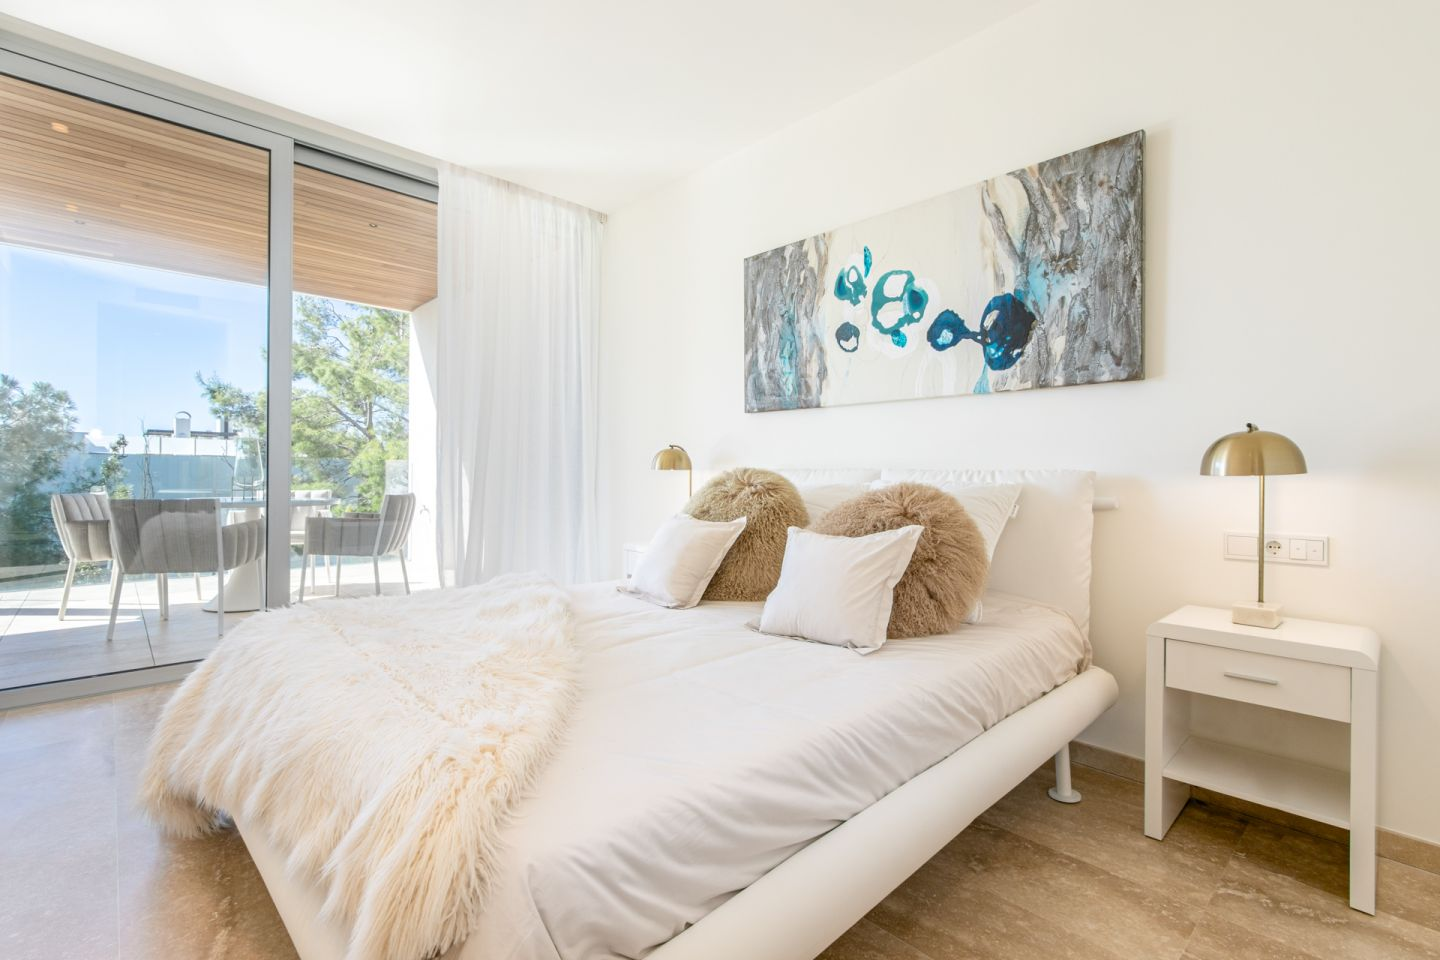 3 Bed Penthouse for sale in PUERTO POLLENSA 18